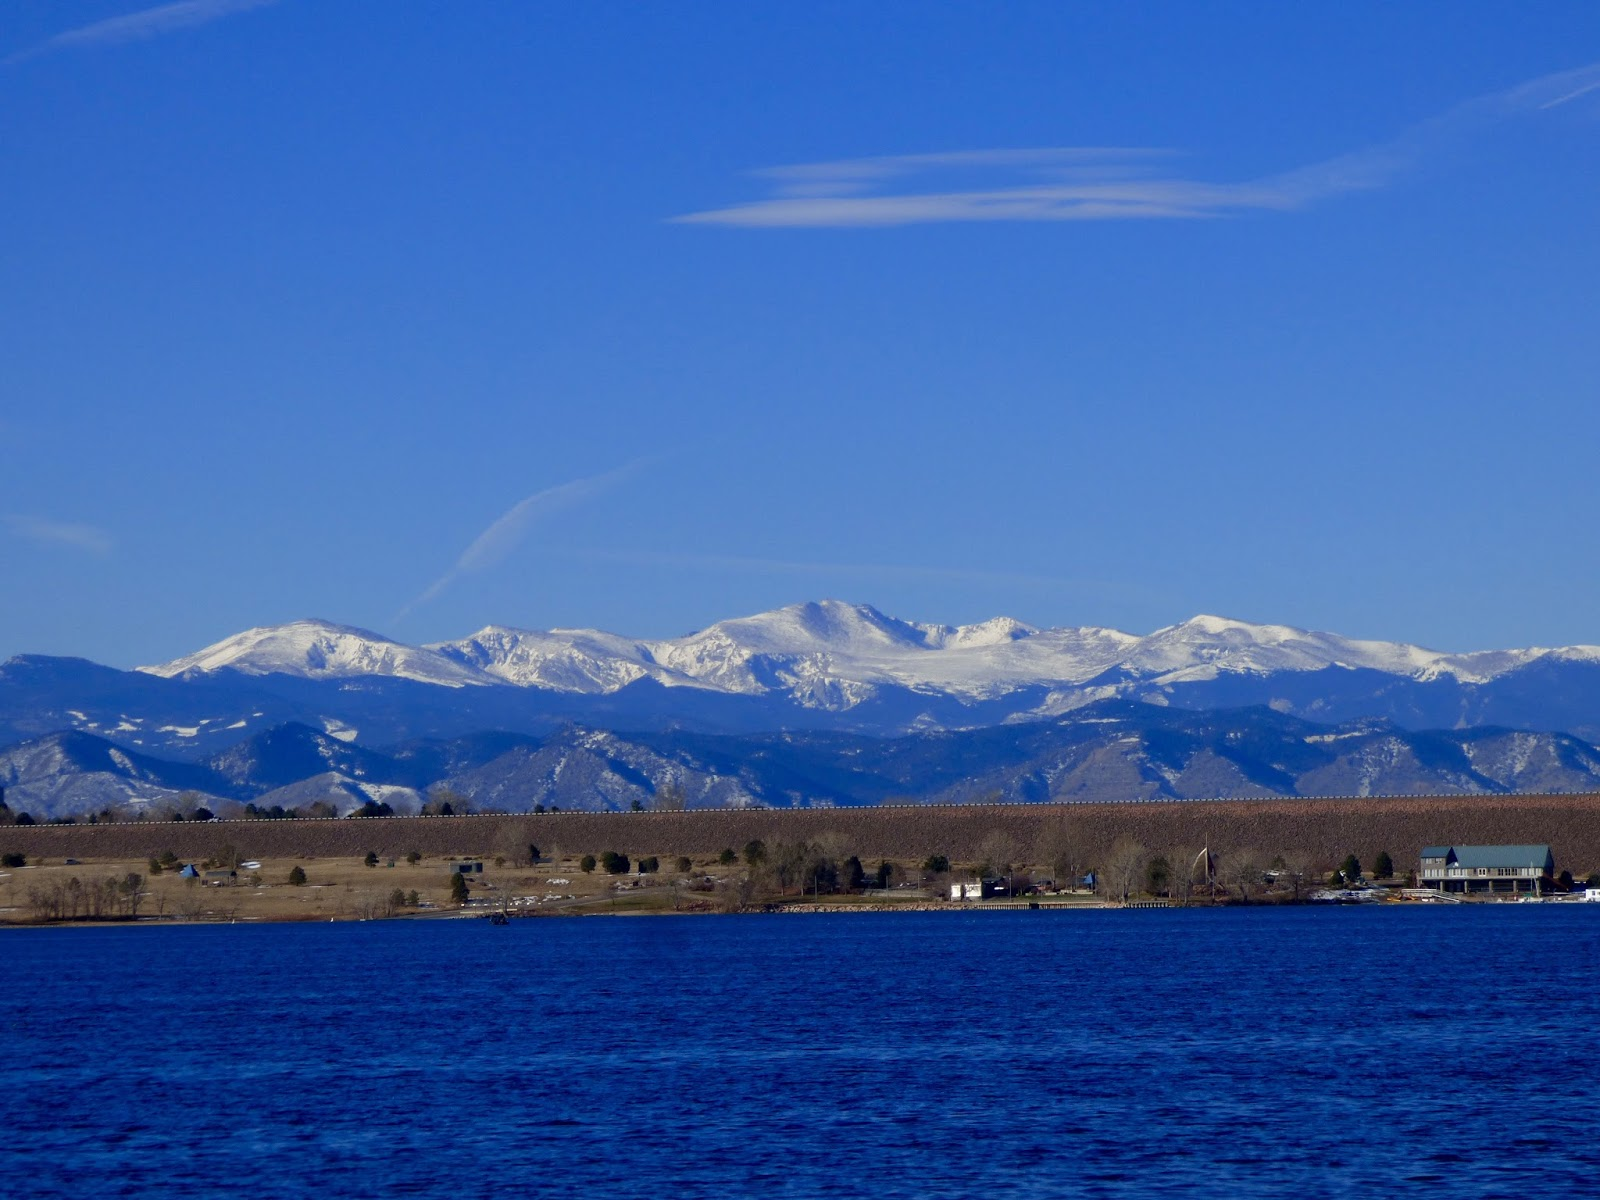 Otowi cherry creek reservoir 11 23 15 for Cherrycreek